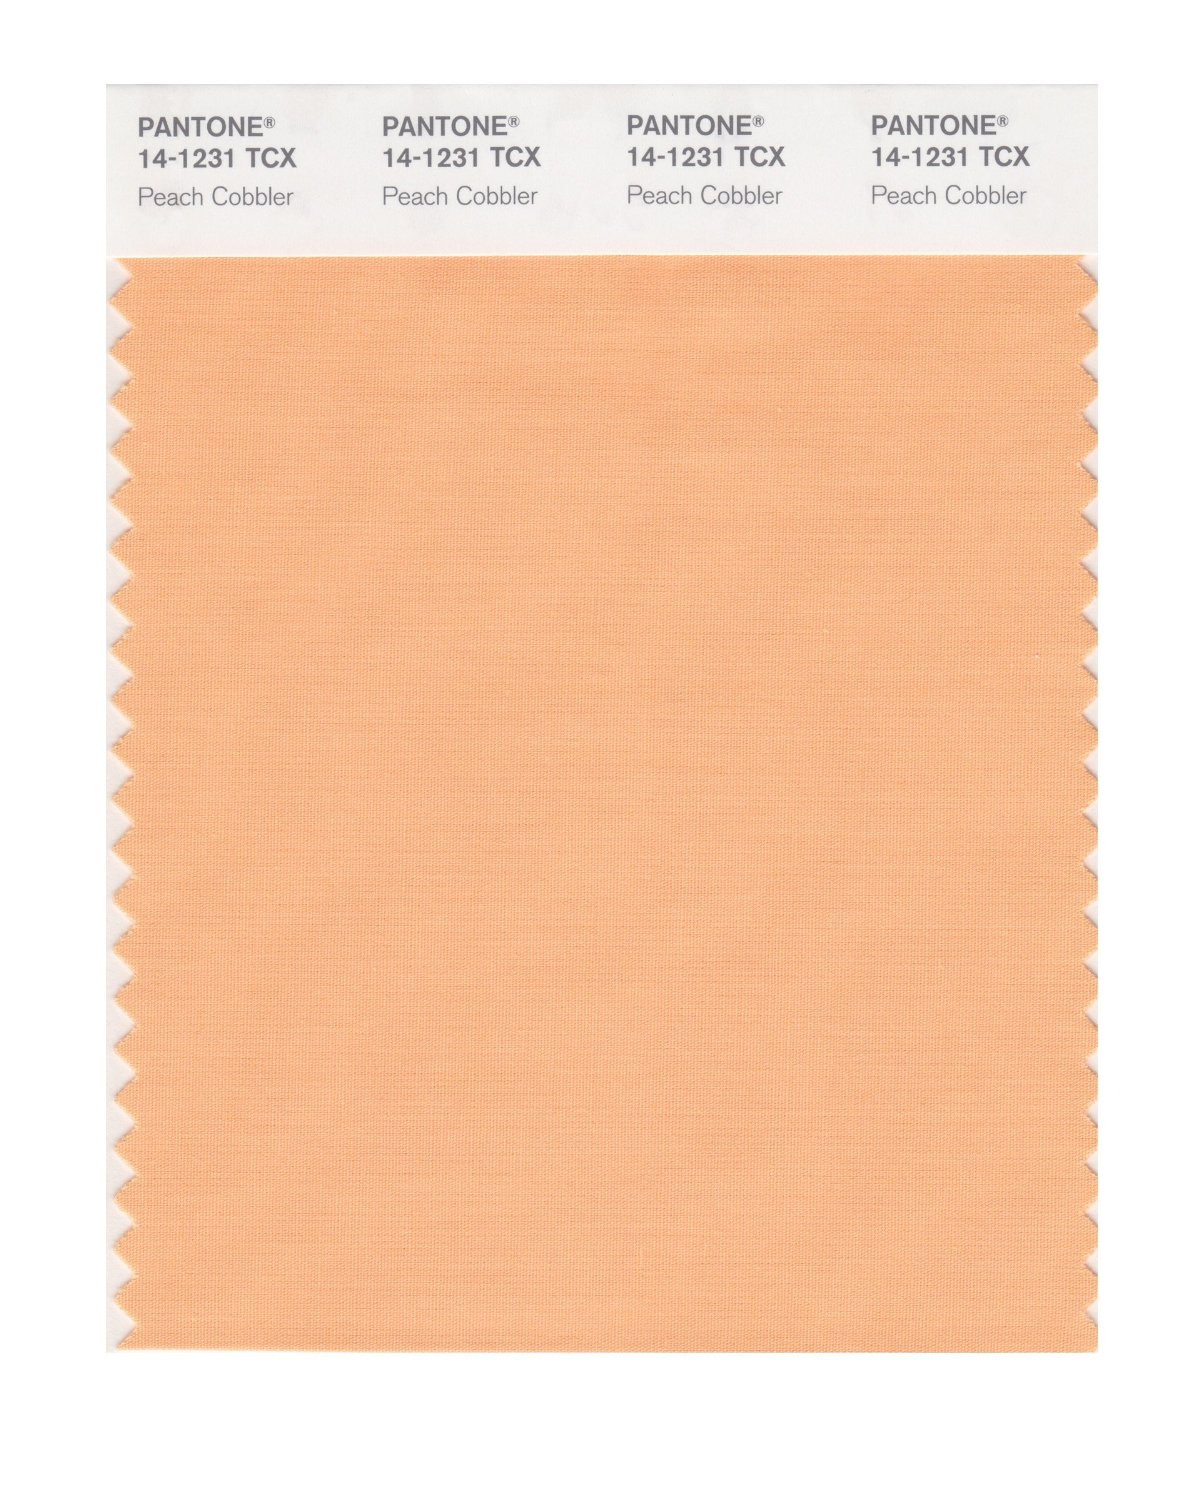 Pantone Smart Swatch 14-1231 Peach Cobbler